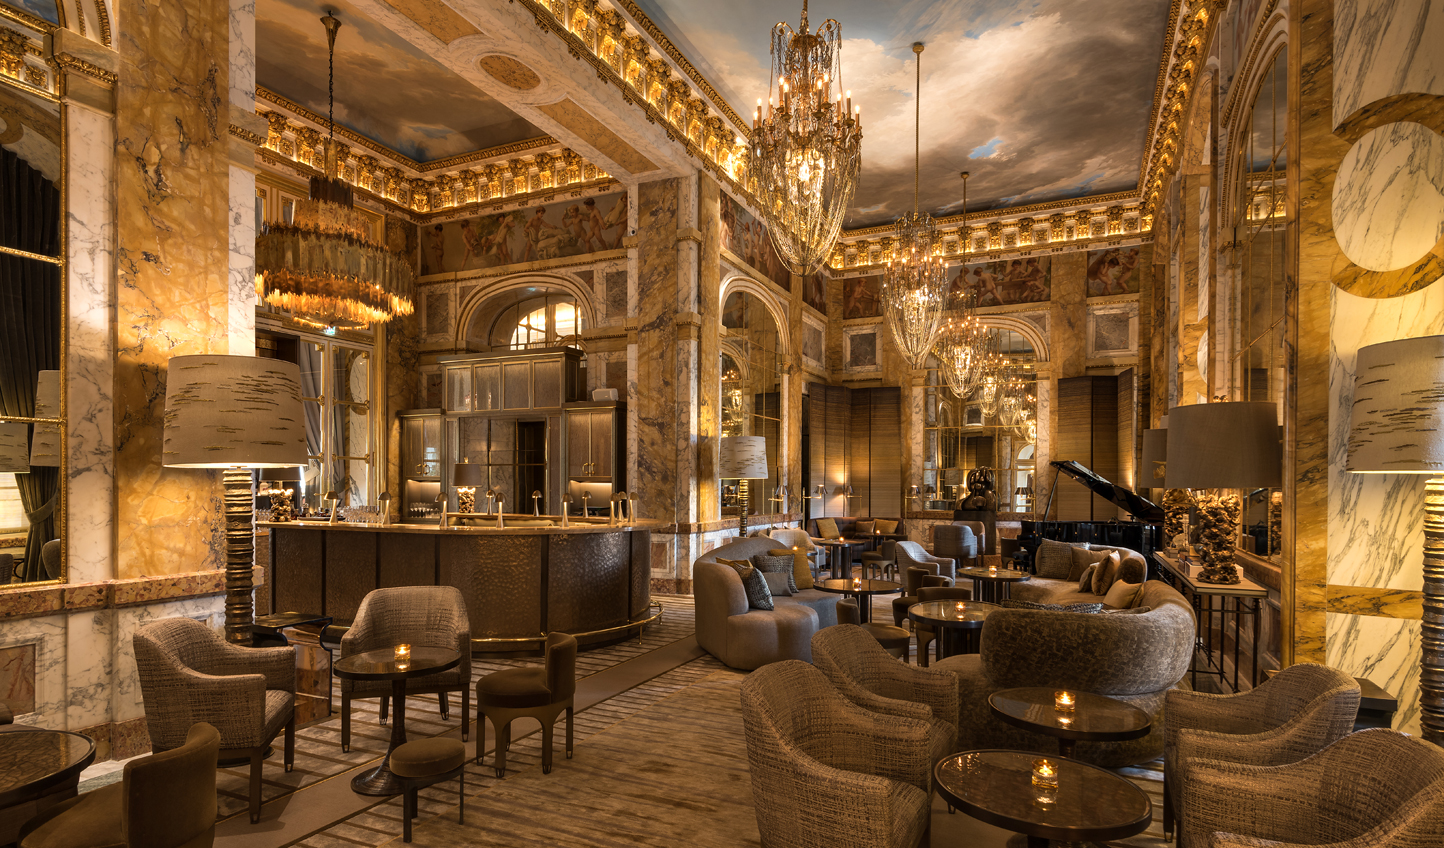 Les Ambassadeurs is the perfect venue for a glass of champagne or a cocktail